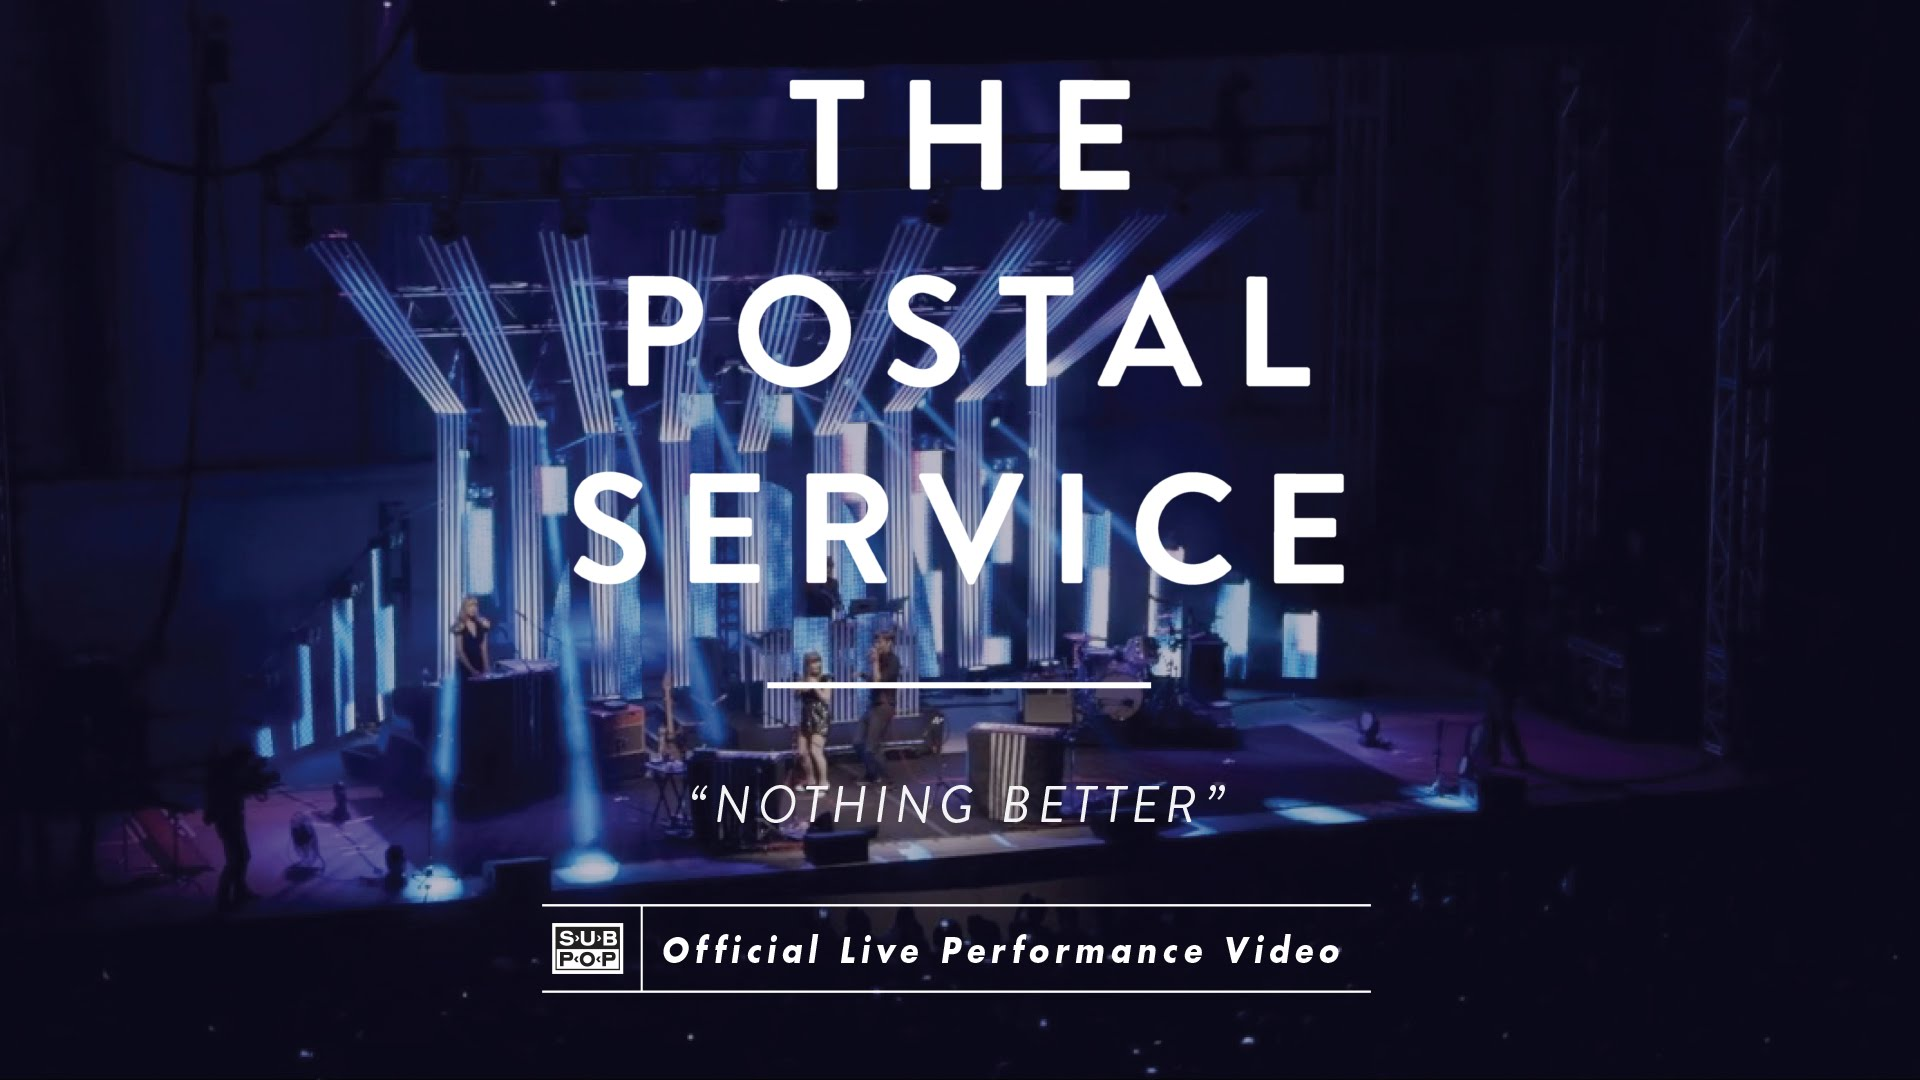 The Postal Service Backgrounds